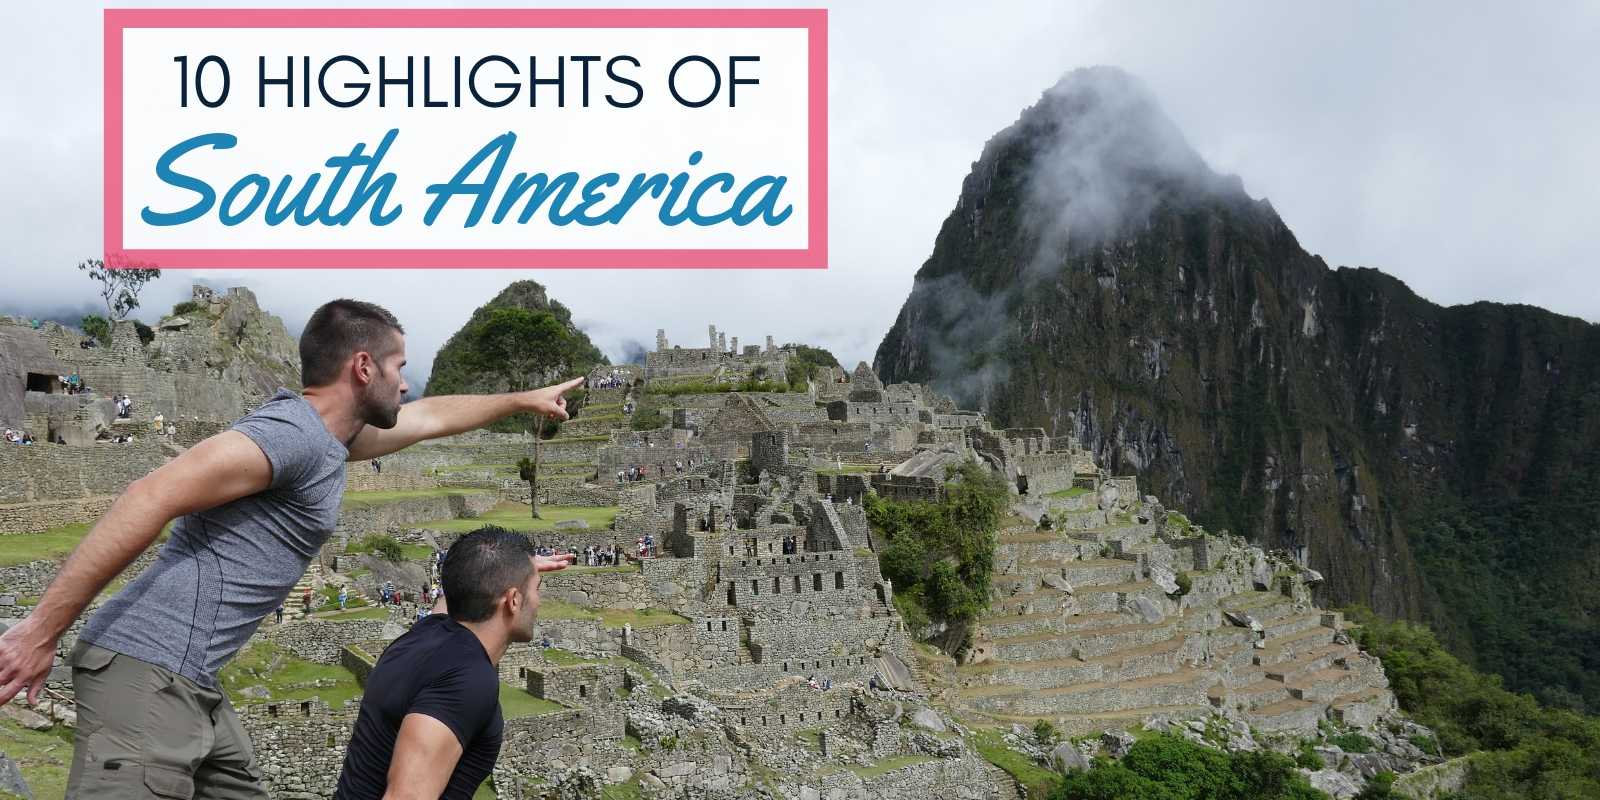 10 Highlights of South America